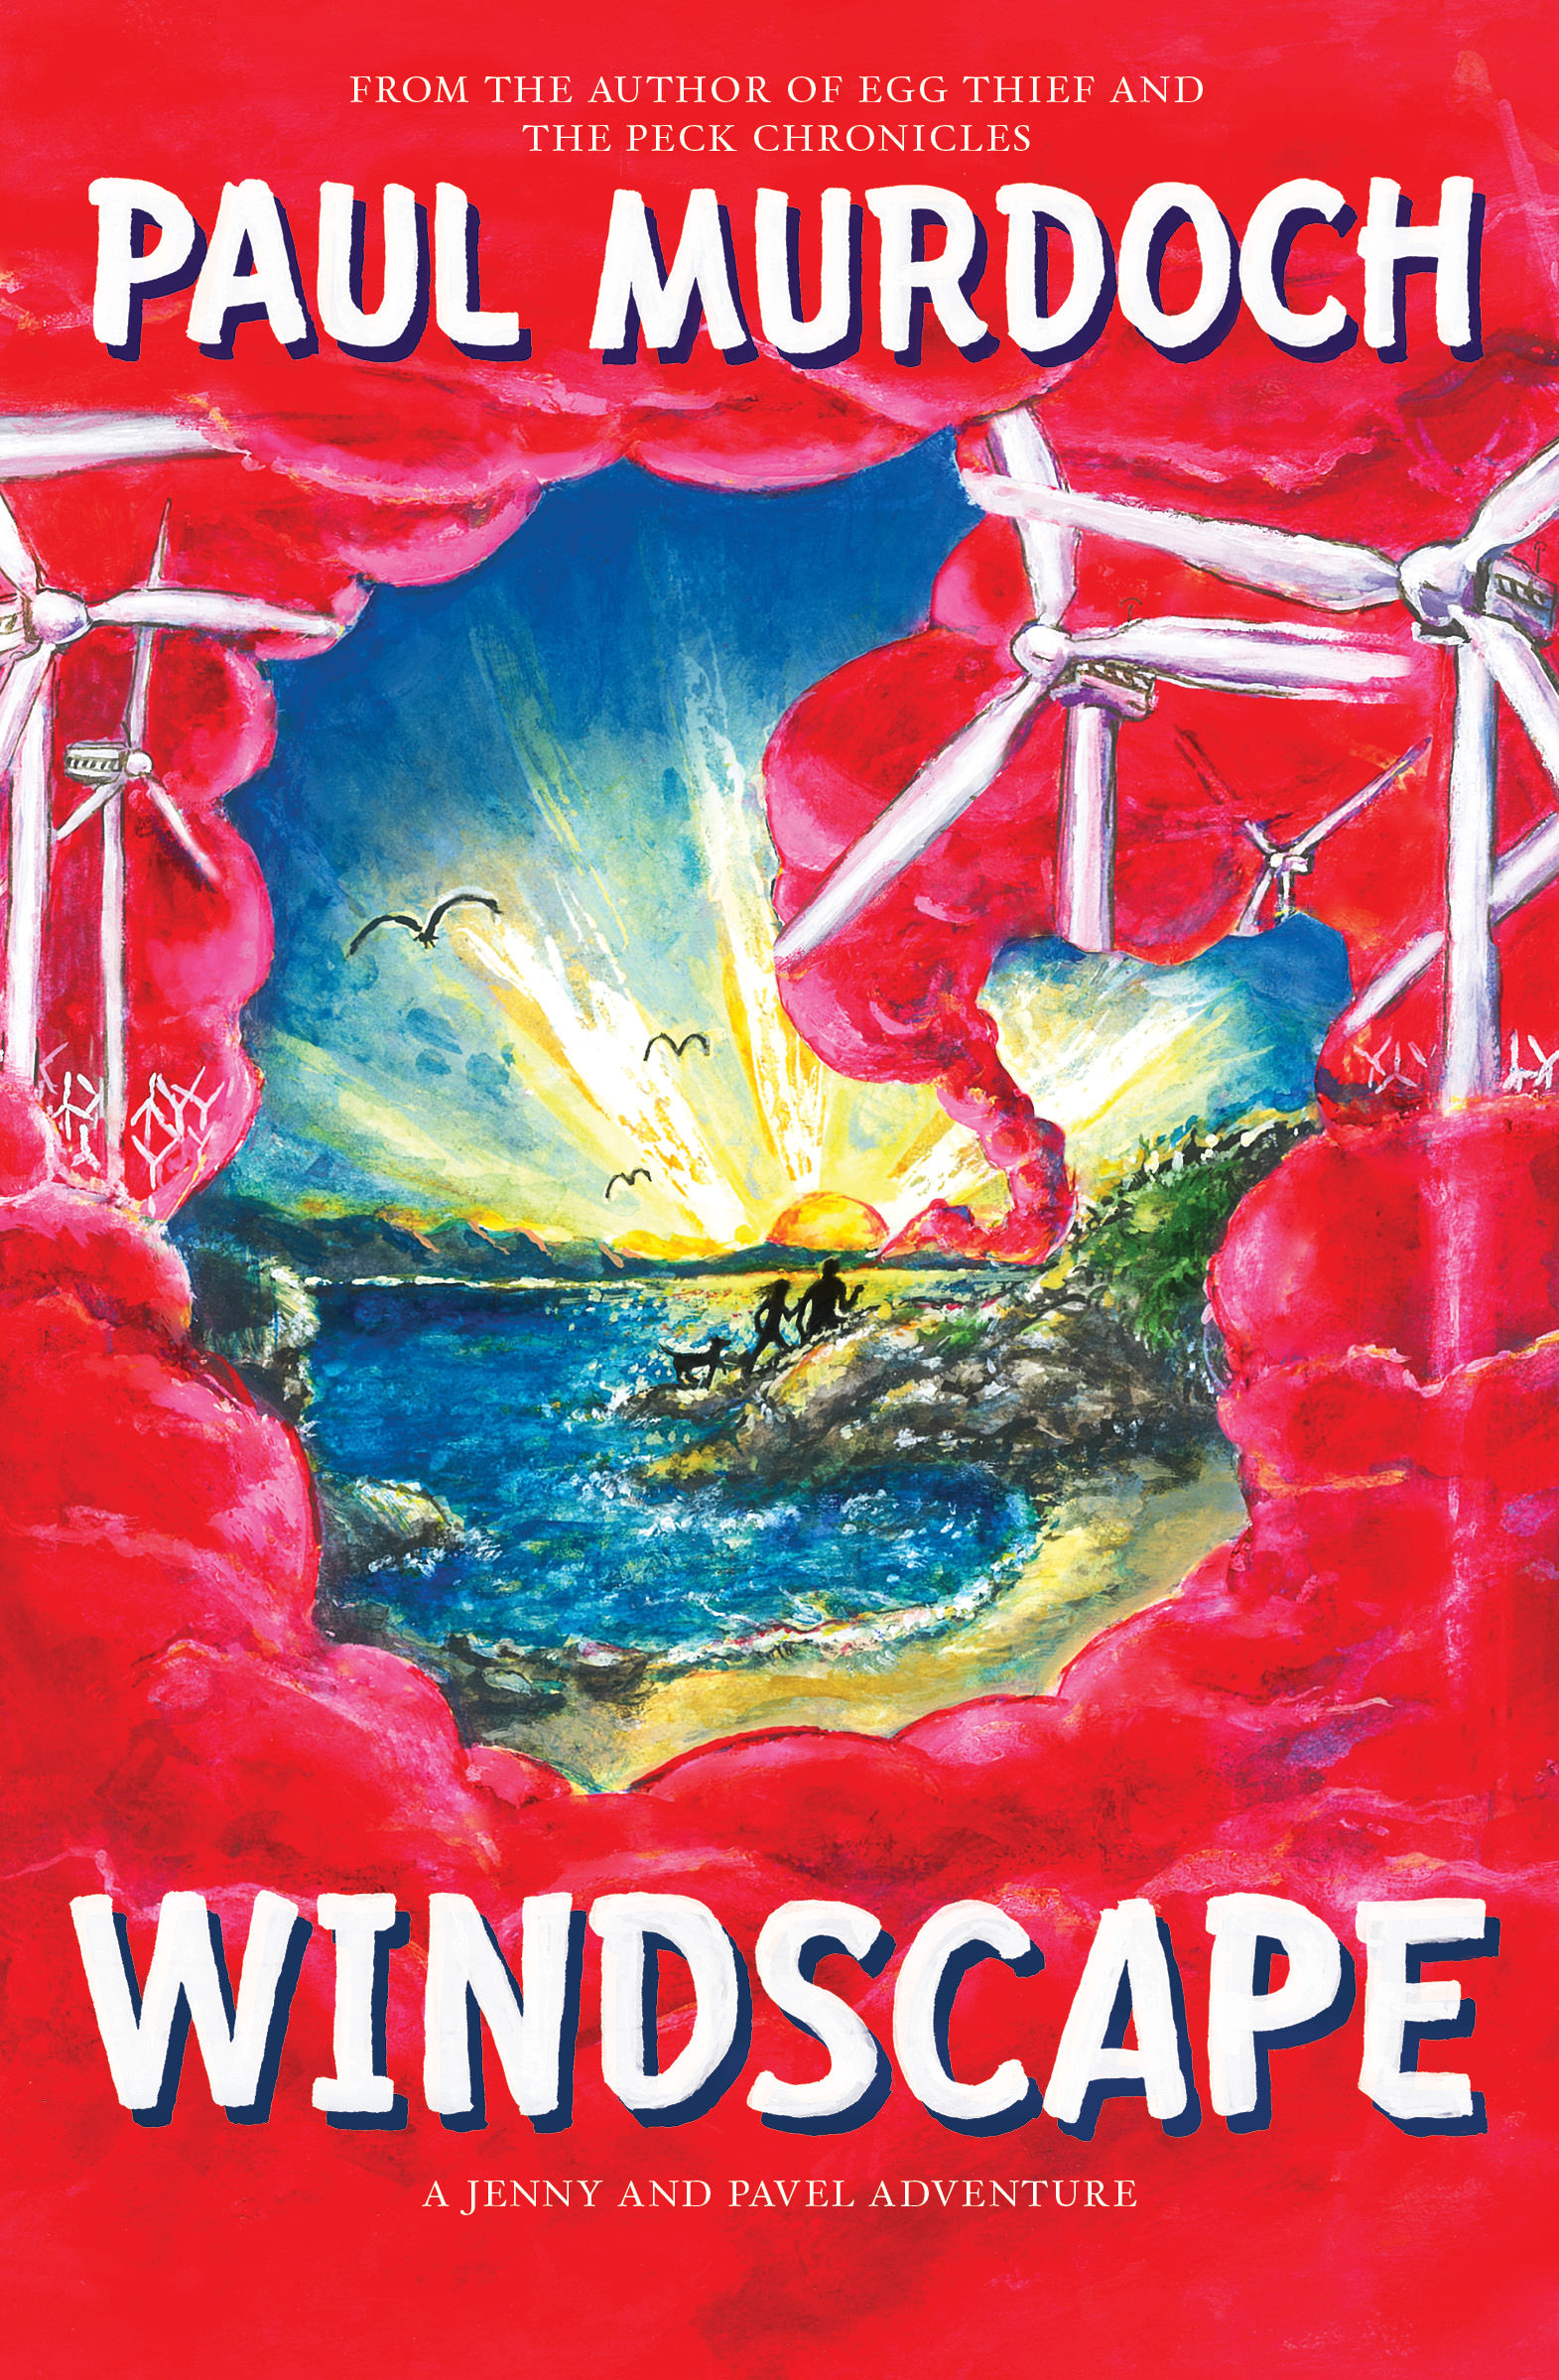 Paul Murdoch's book cover for Windscape published by Neetah Books showing kids and a dog on an adventure surrounded clouds filled with windmills.